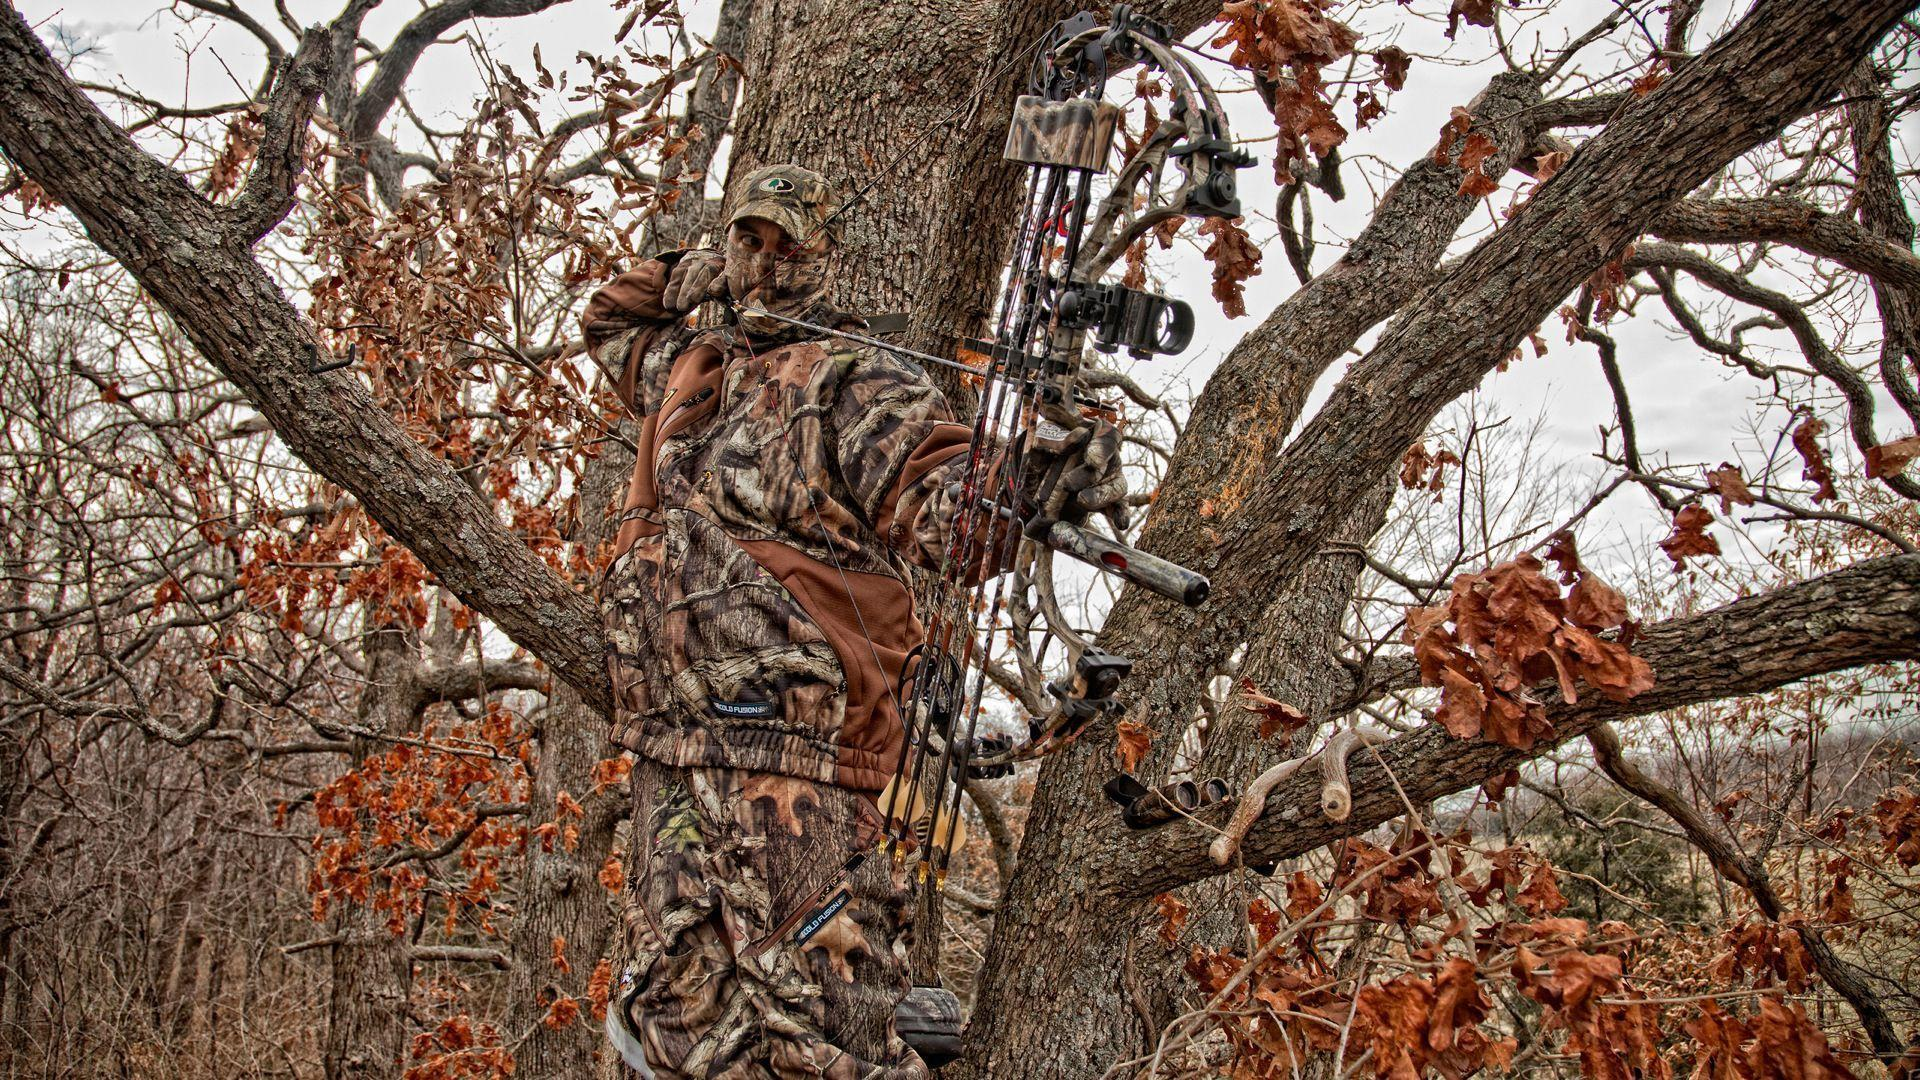 1000+ images about Camouflage Patterns on Pinterest | A tree, Camo ...